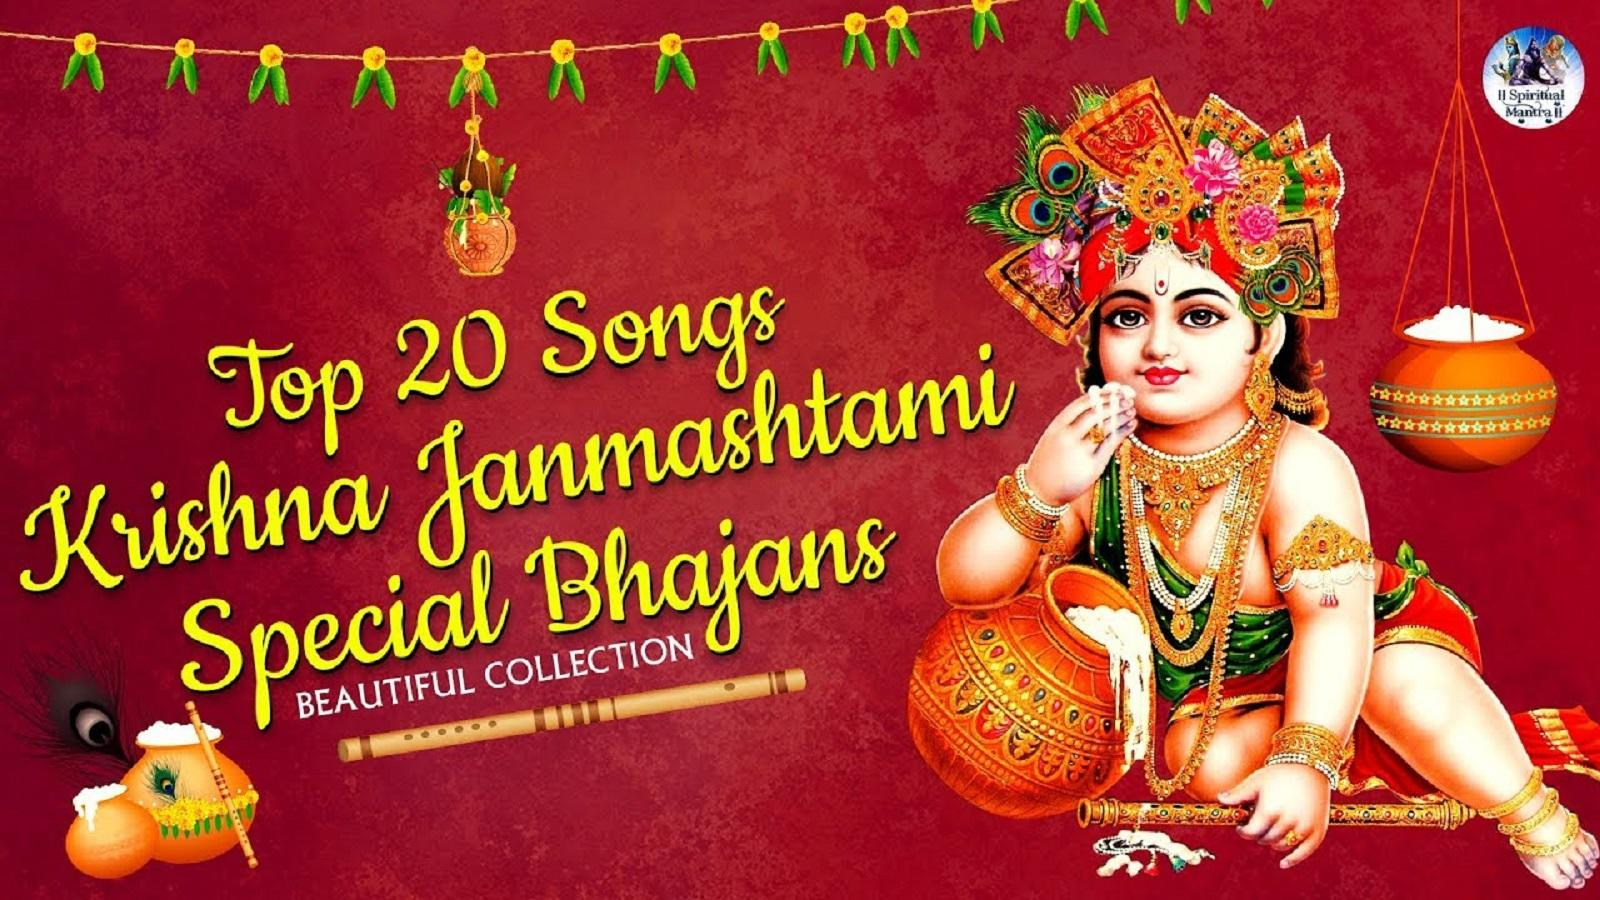 Krishna Janmashtami Bhajans 2019: Hindi songs JUKEBOX sung by Trisha Parui  and Madhuraa Bhattacharya